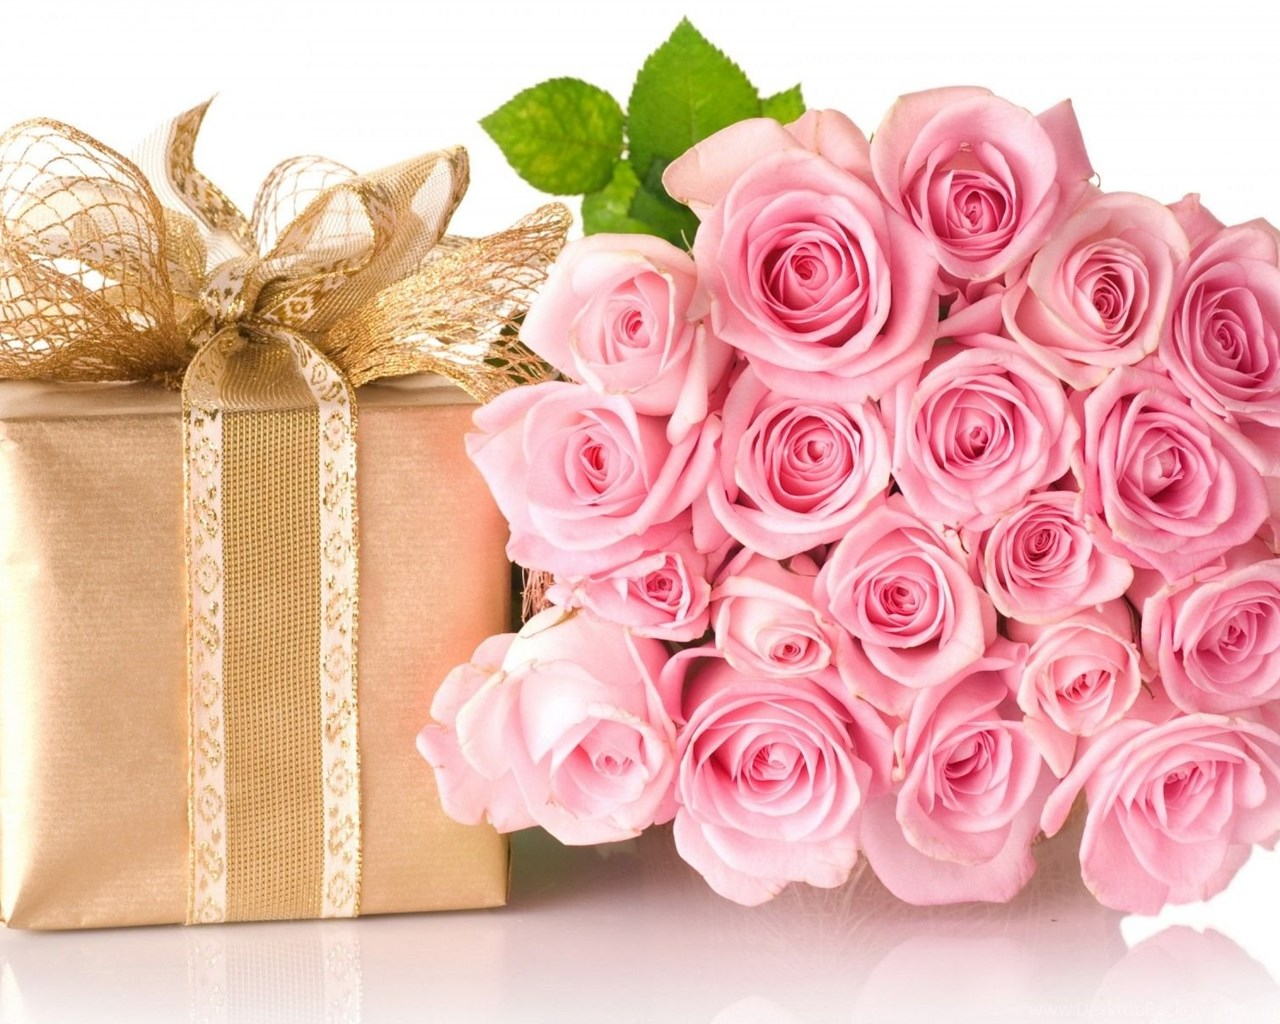 Happy birthday flowers rose imagesg desktop background widescreen izmirmasajfo